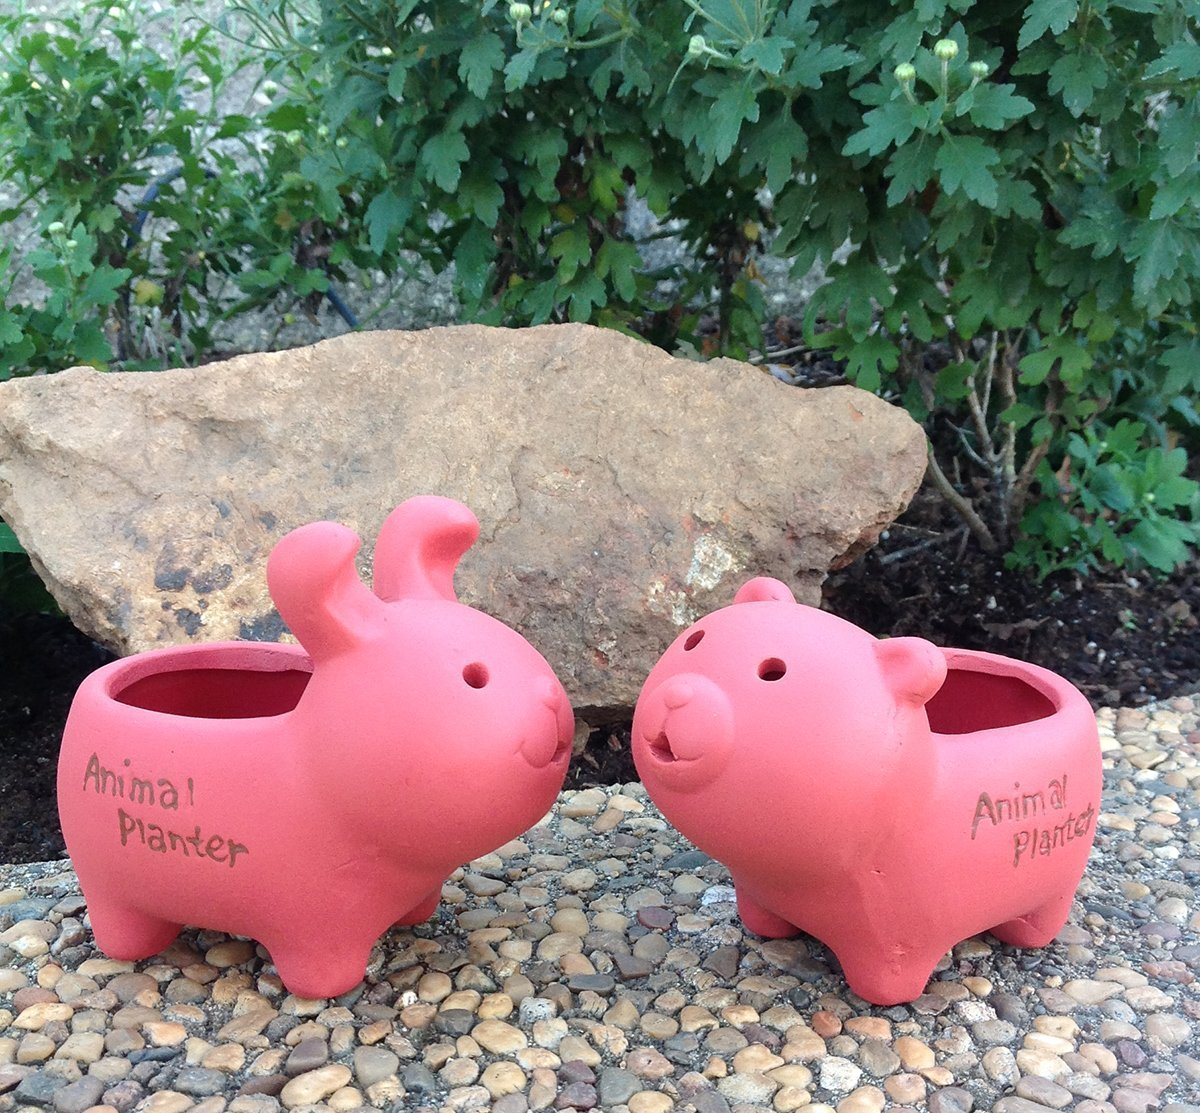 Set of 2 Adorable Terra Cotta Rabbit and Bear Shaped Mini Planters for Indoors or Outdoors